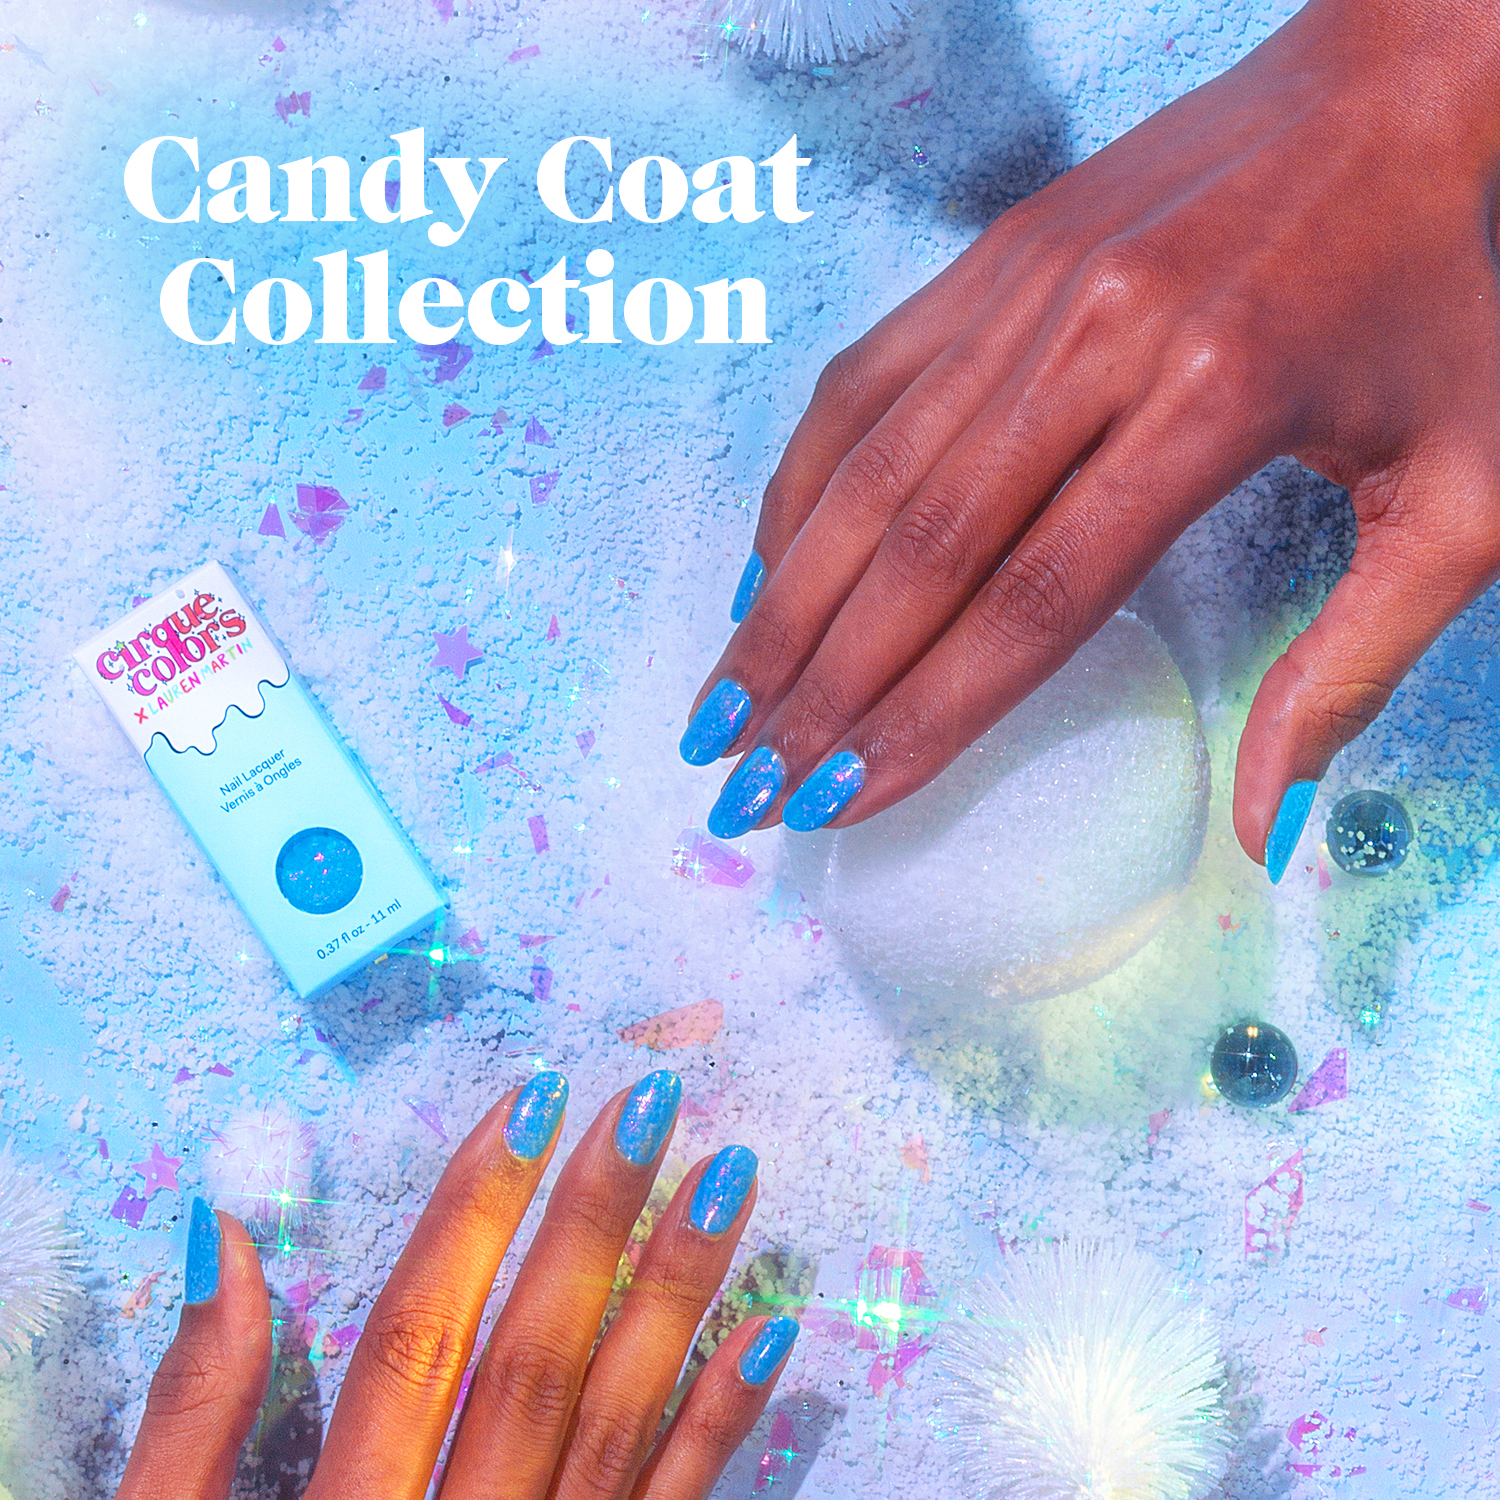 Candy Coat Collection